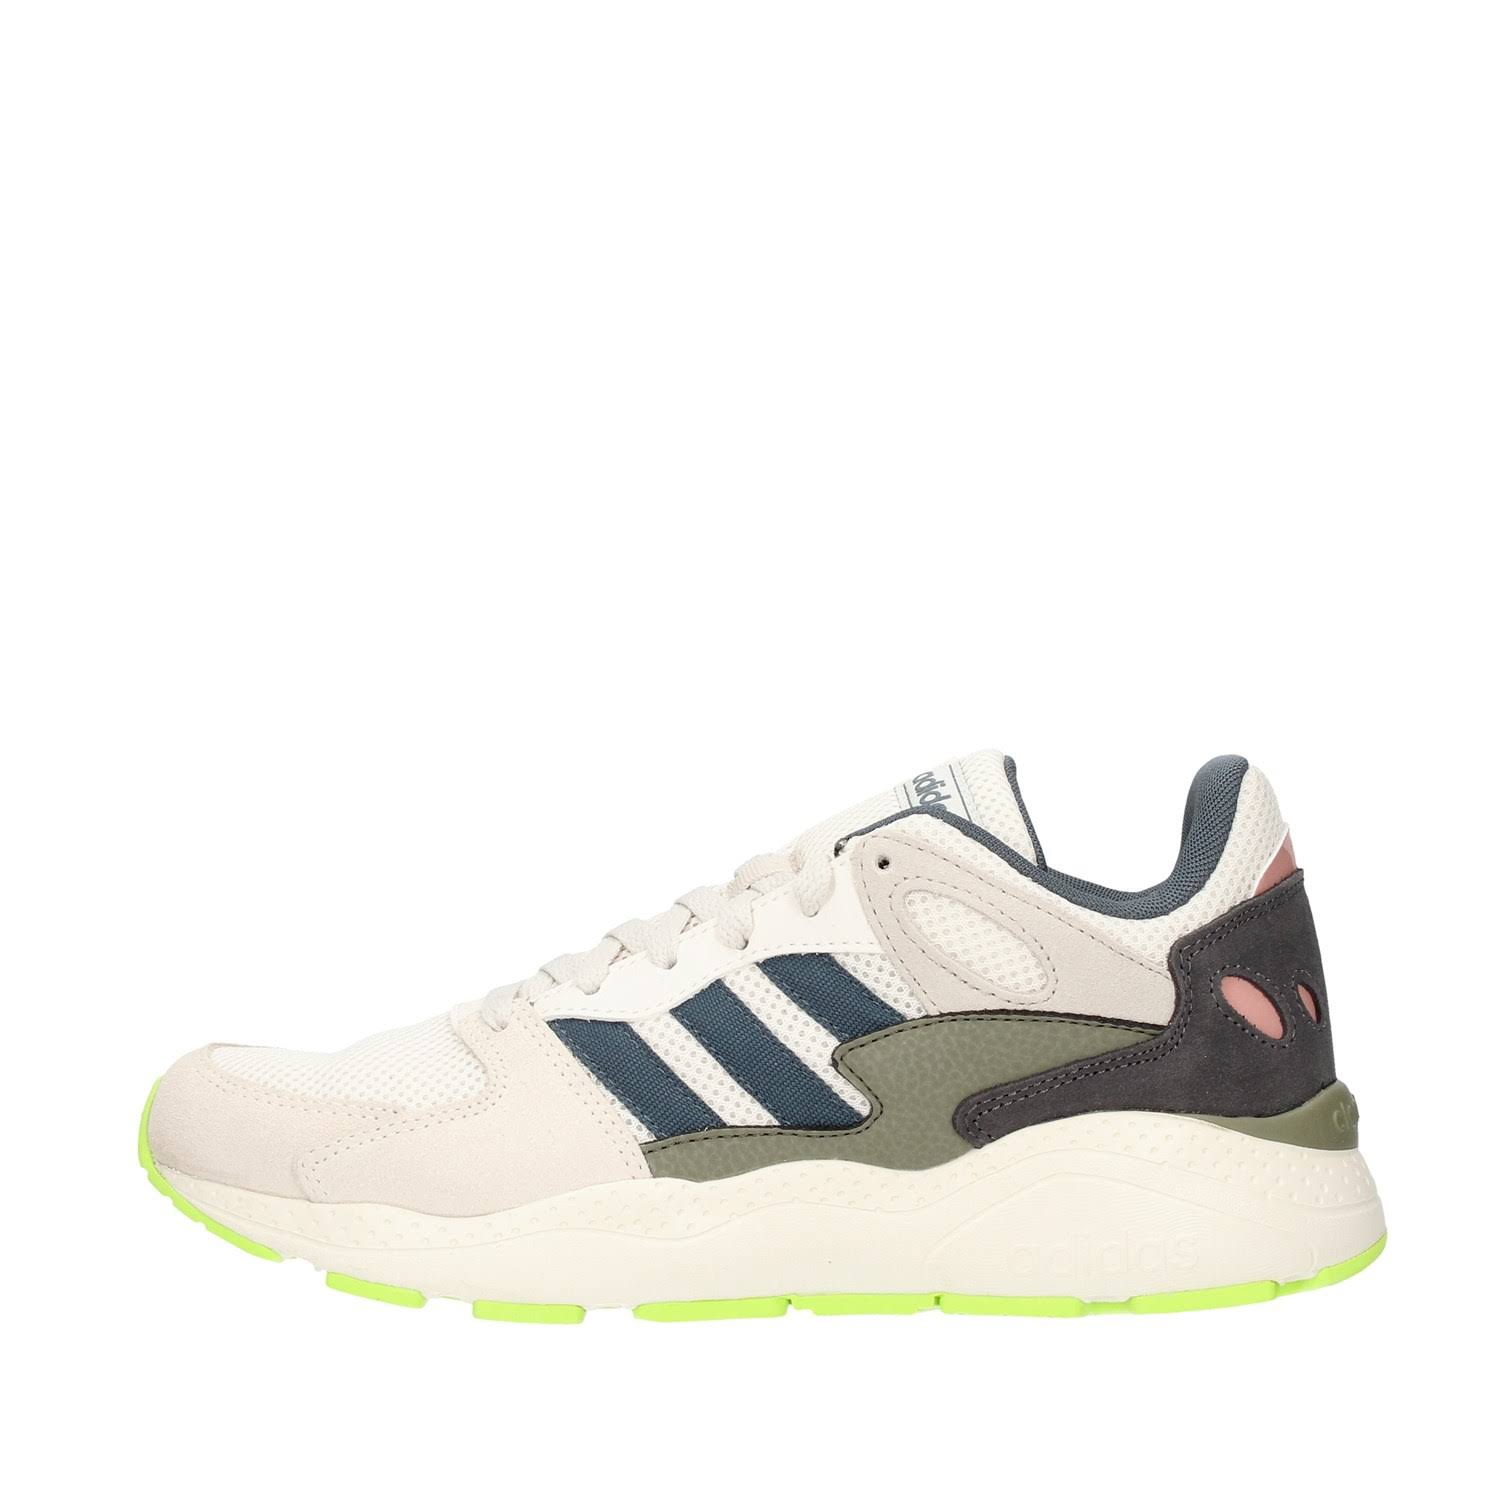 Adidas Performance Crazychaos Trainers, White